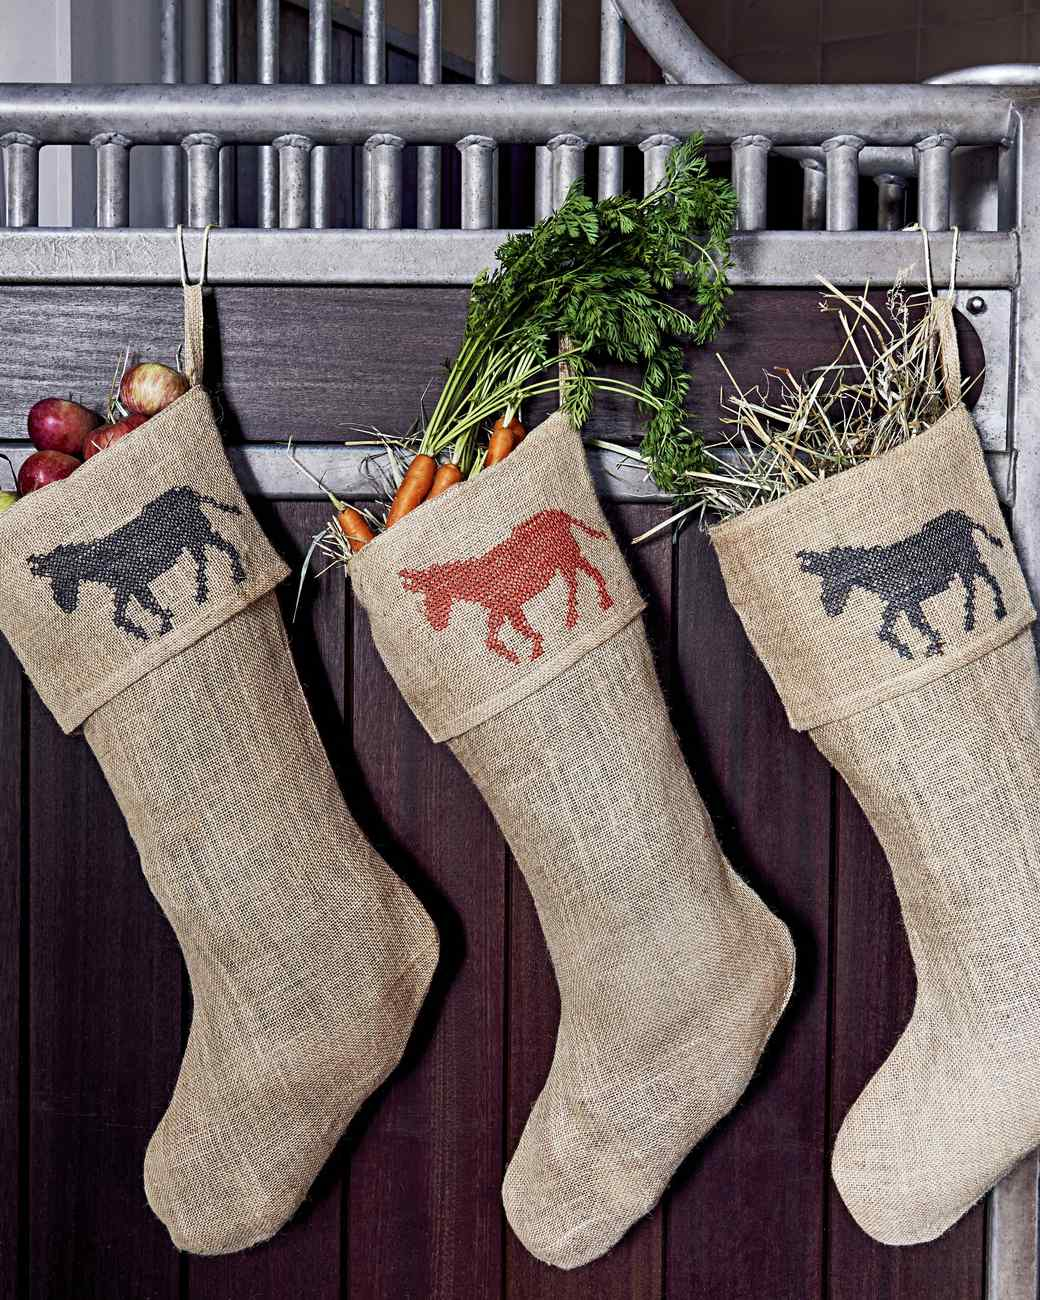 Burlap Christmas Stockings.Cross Stitch Burlap Christmas Stockings Martha Stewart